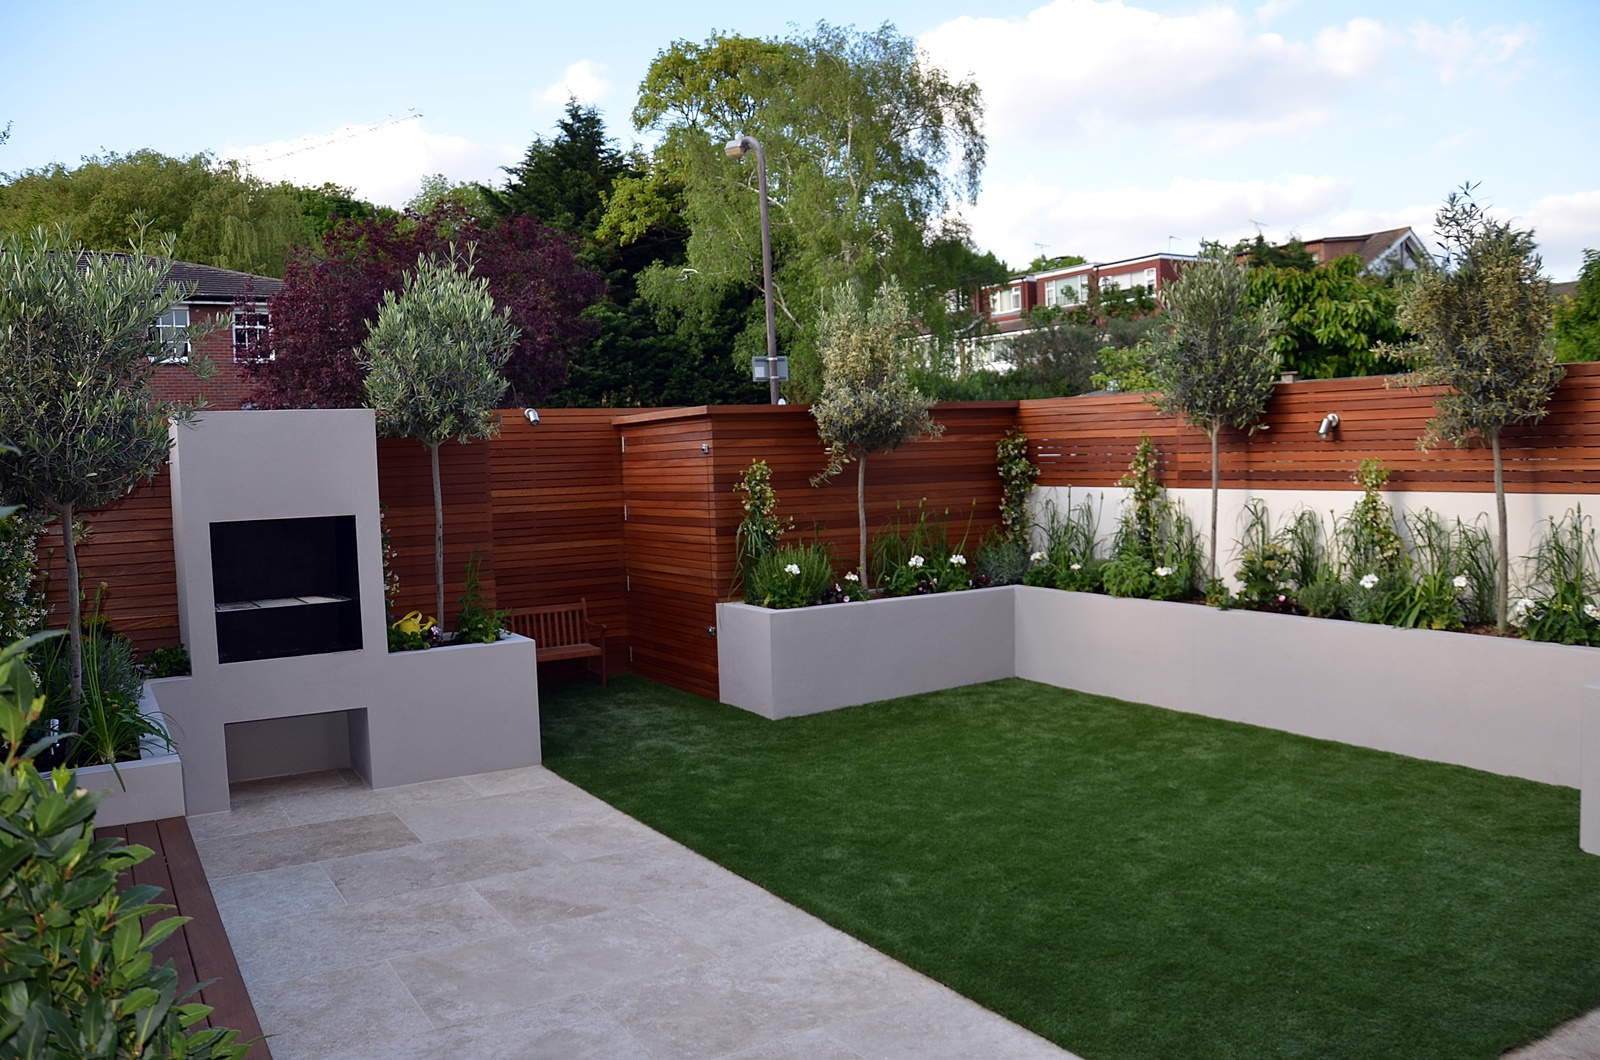 modern garden design 2016 Chelsea fulham kensington london